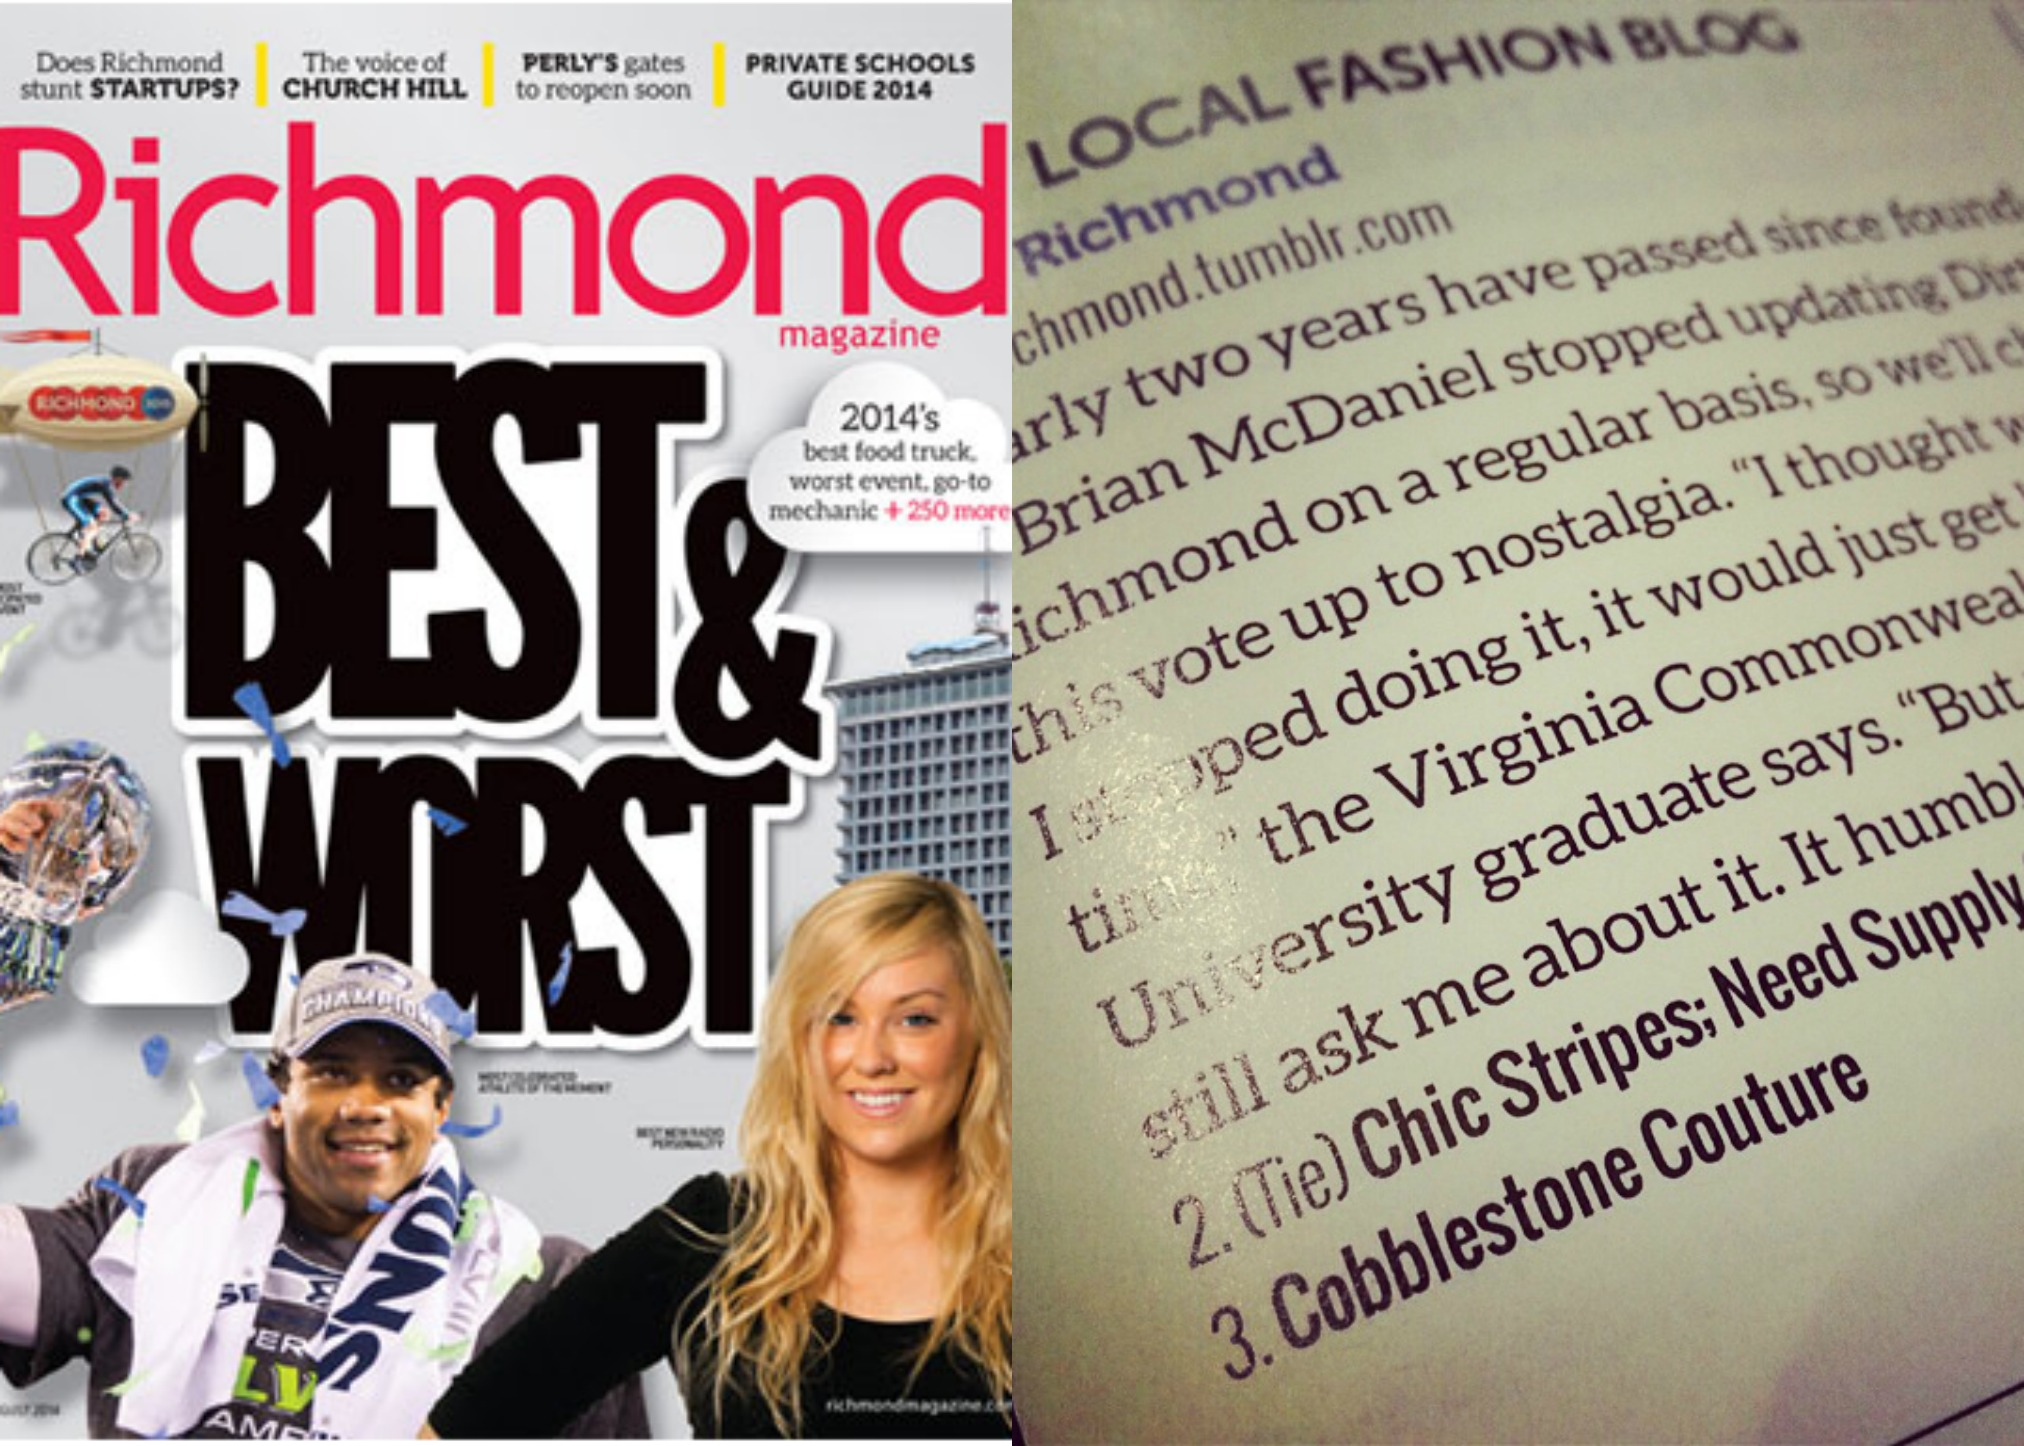 Best & Worst 2014, Best Local Fashion Blog, second place tie with Need Supply Company, Richmond Magazine